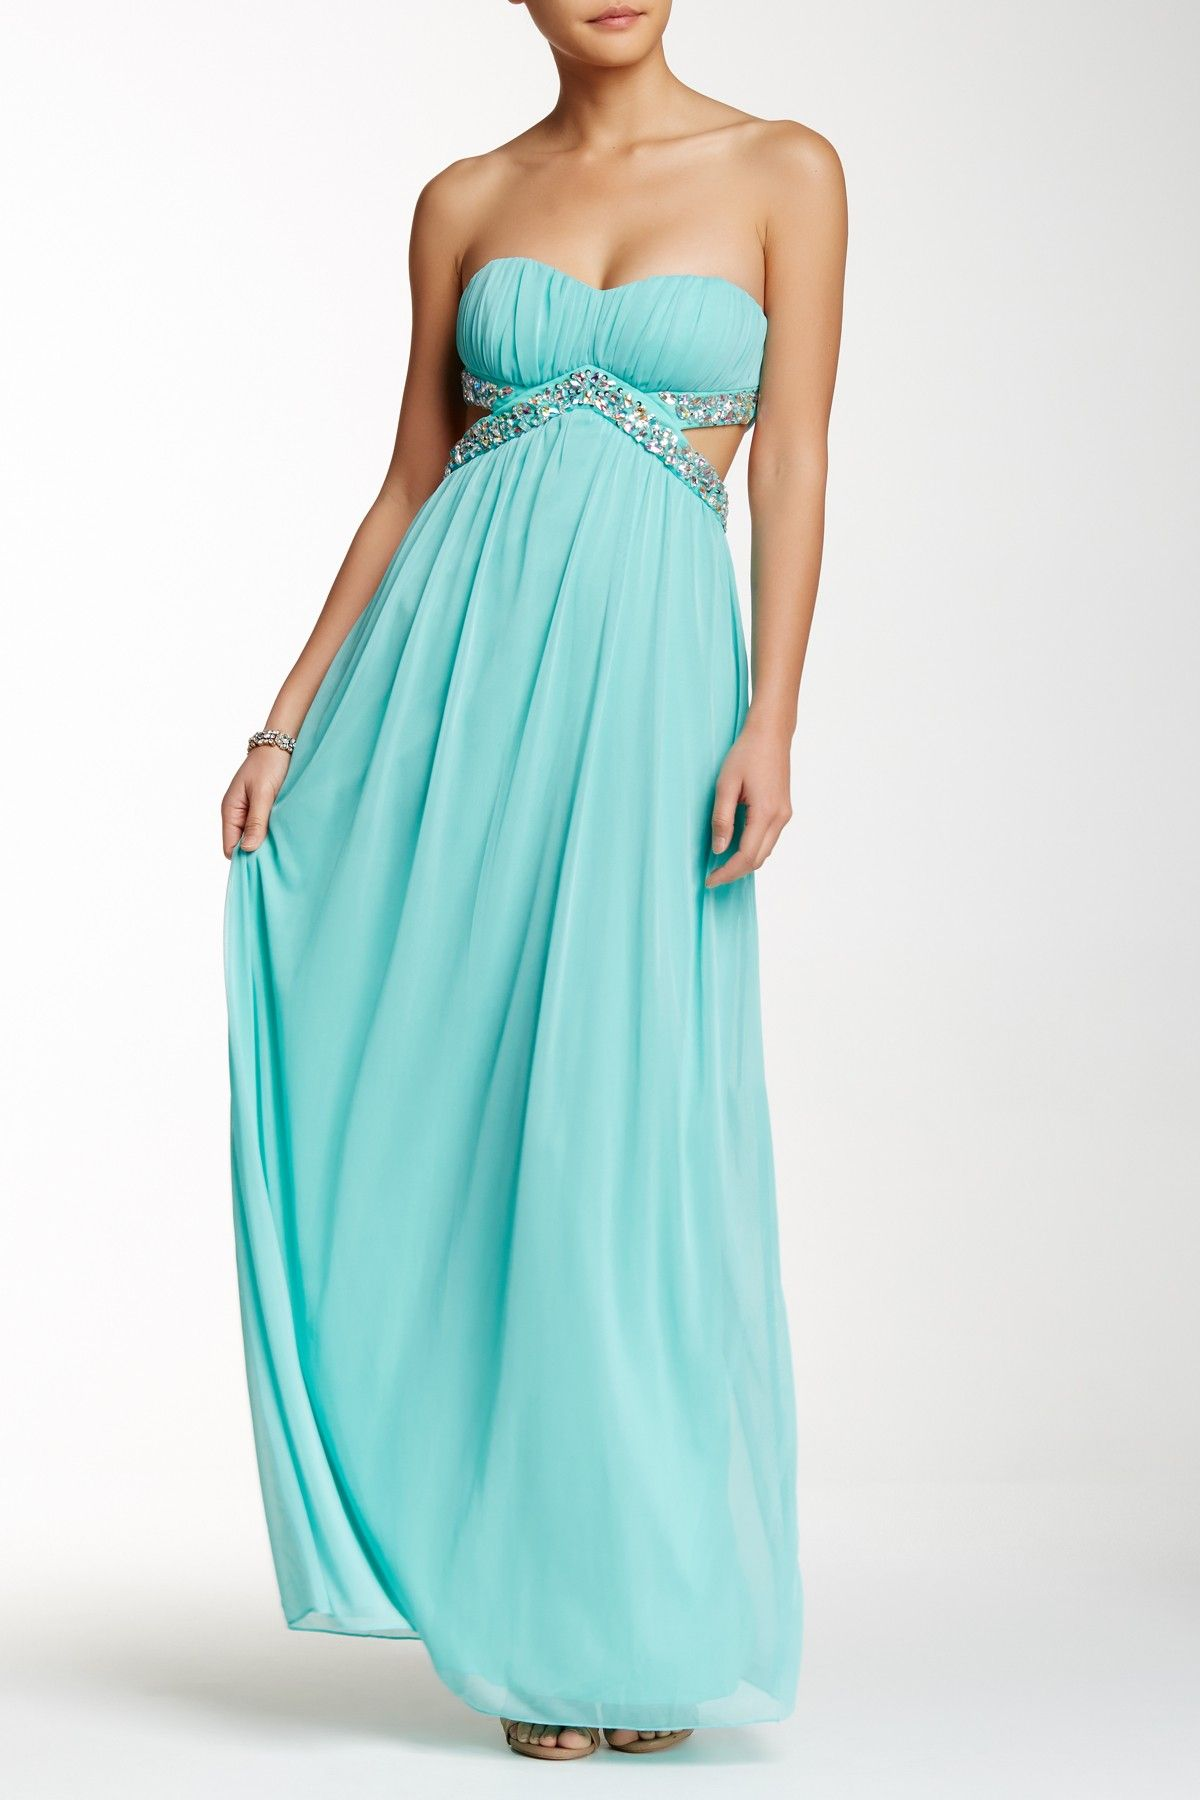 Trixxi | Strapless Bodice Cutout Mesh Prom Dress | Prom, Bodice and Teal